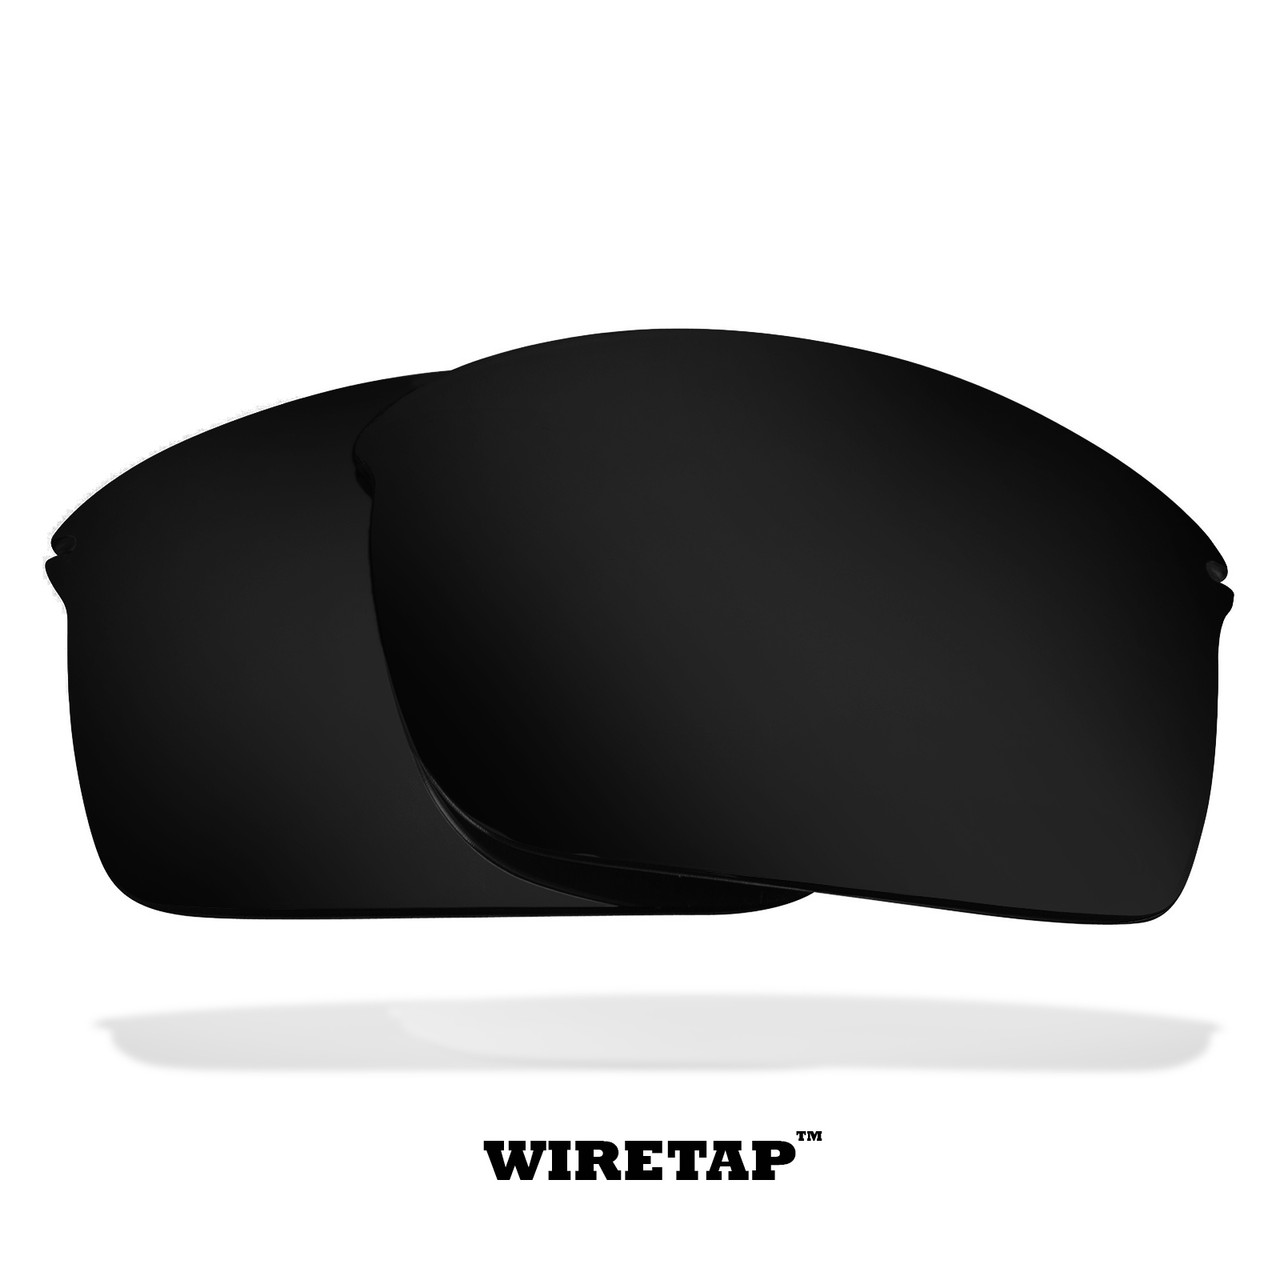 ae3d2d51565 Fits Oakley Wiretap - Seek Optics